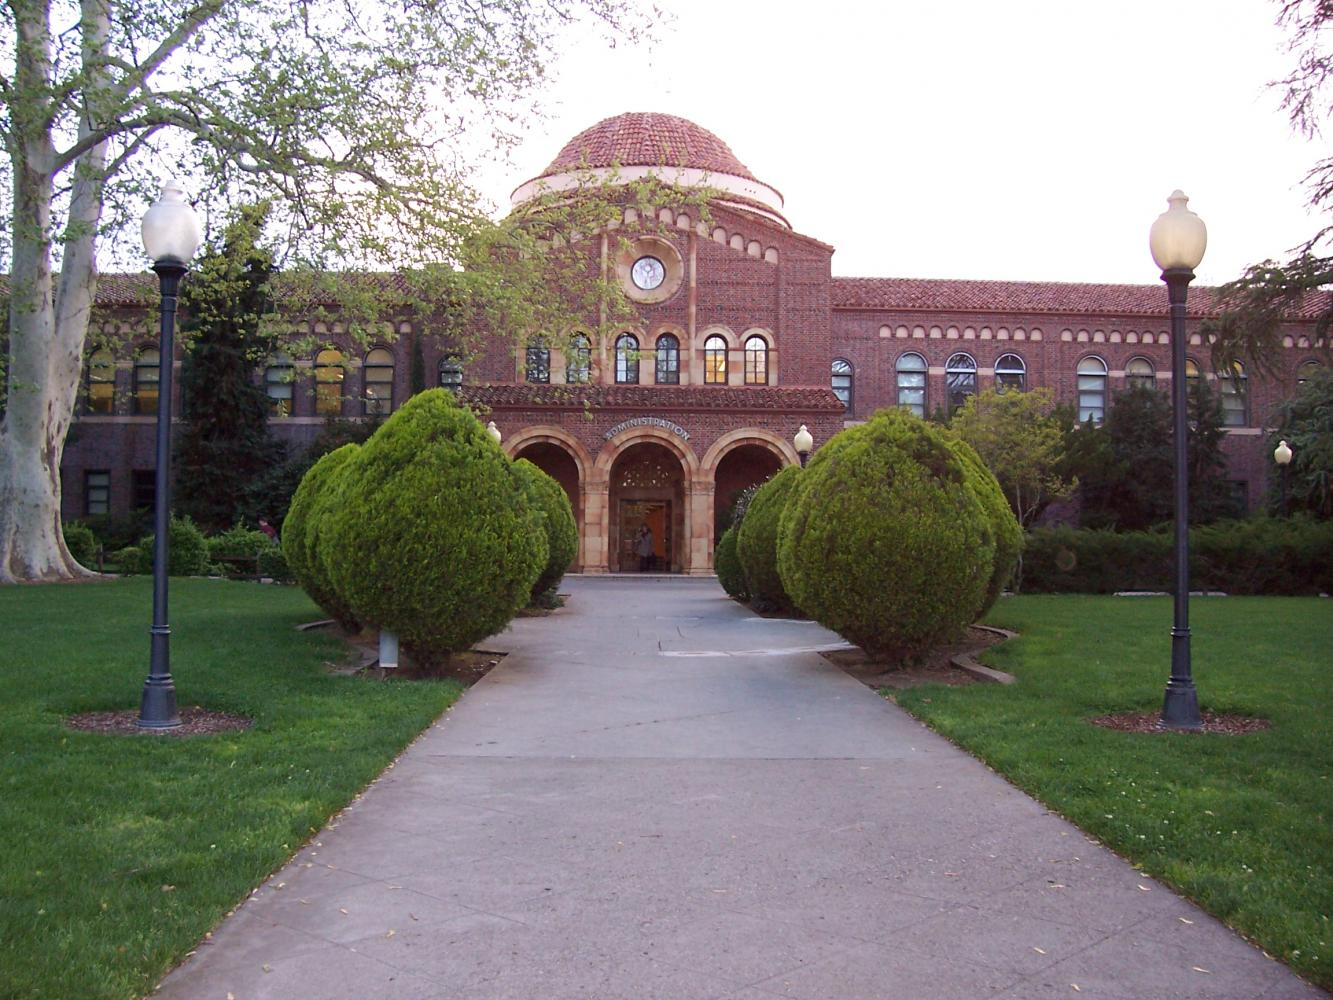 Chico State named one of greenest campuses in the US by The Princeton Review